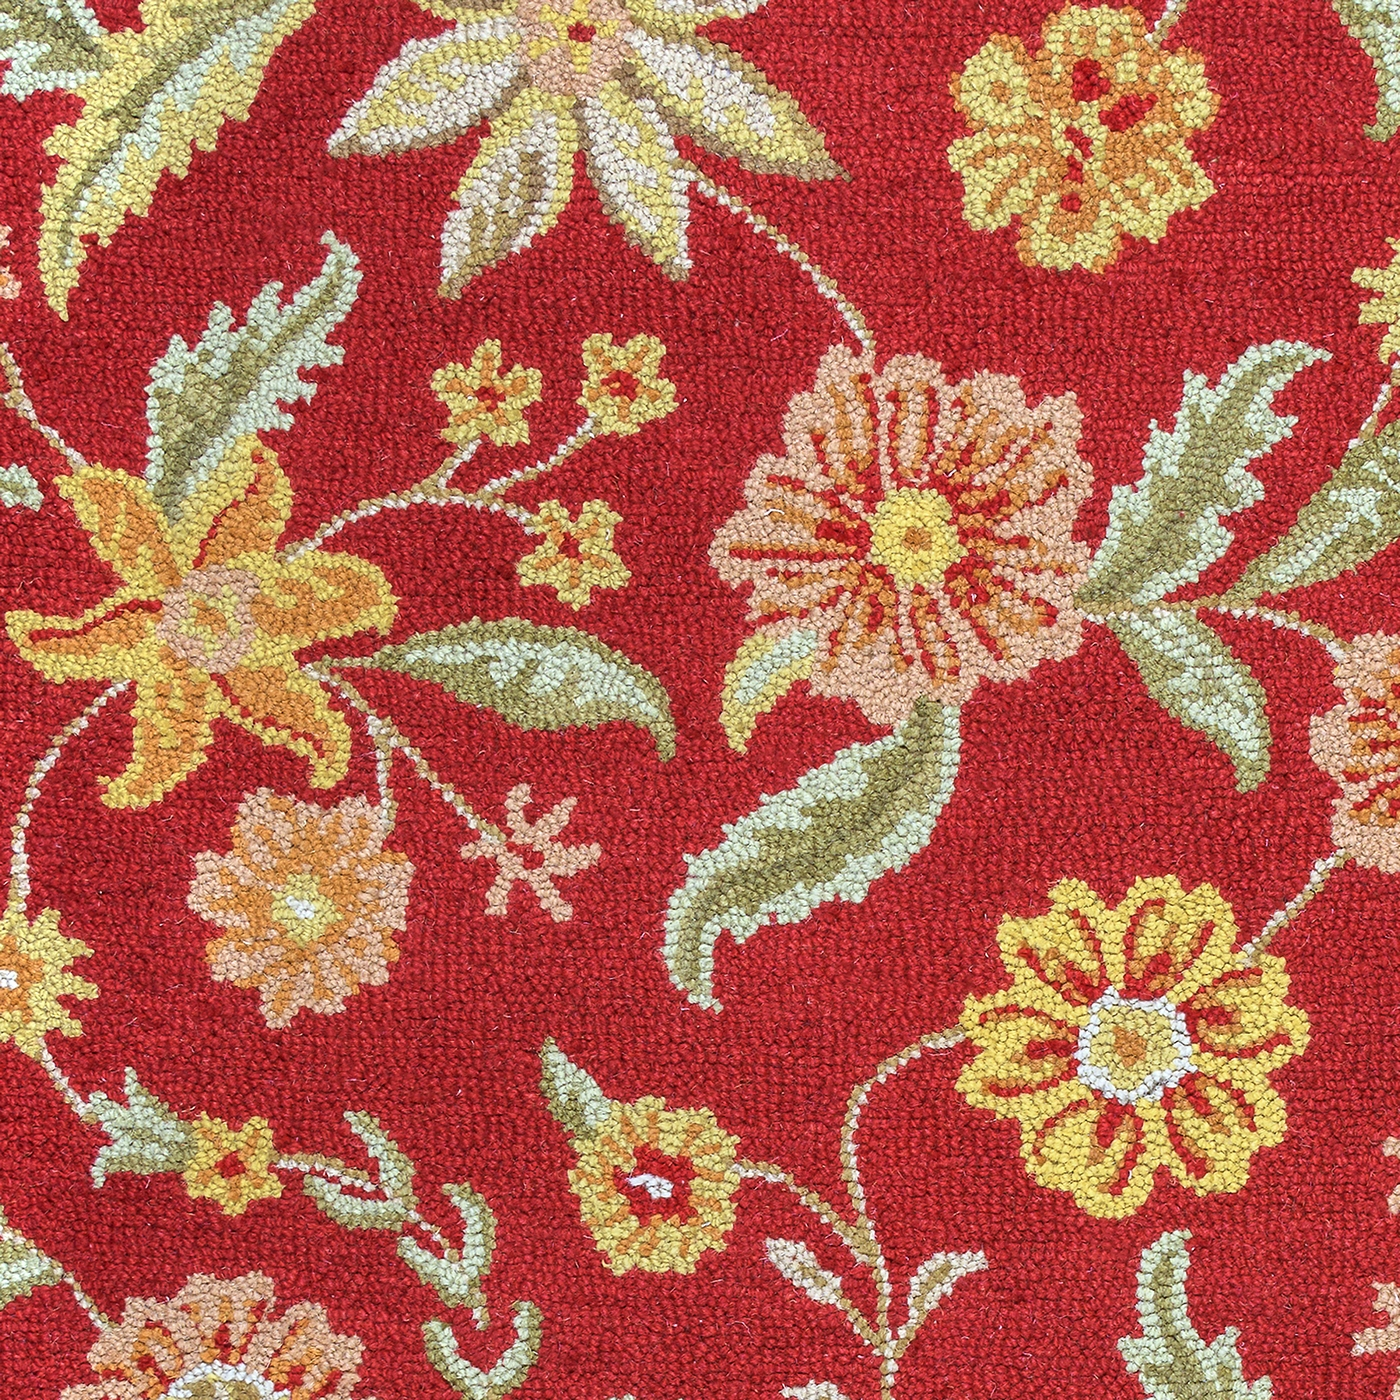 Country floral new zealand wool area rug in red orange for Red floral area rug